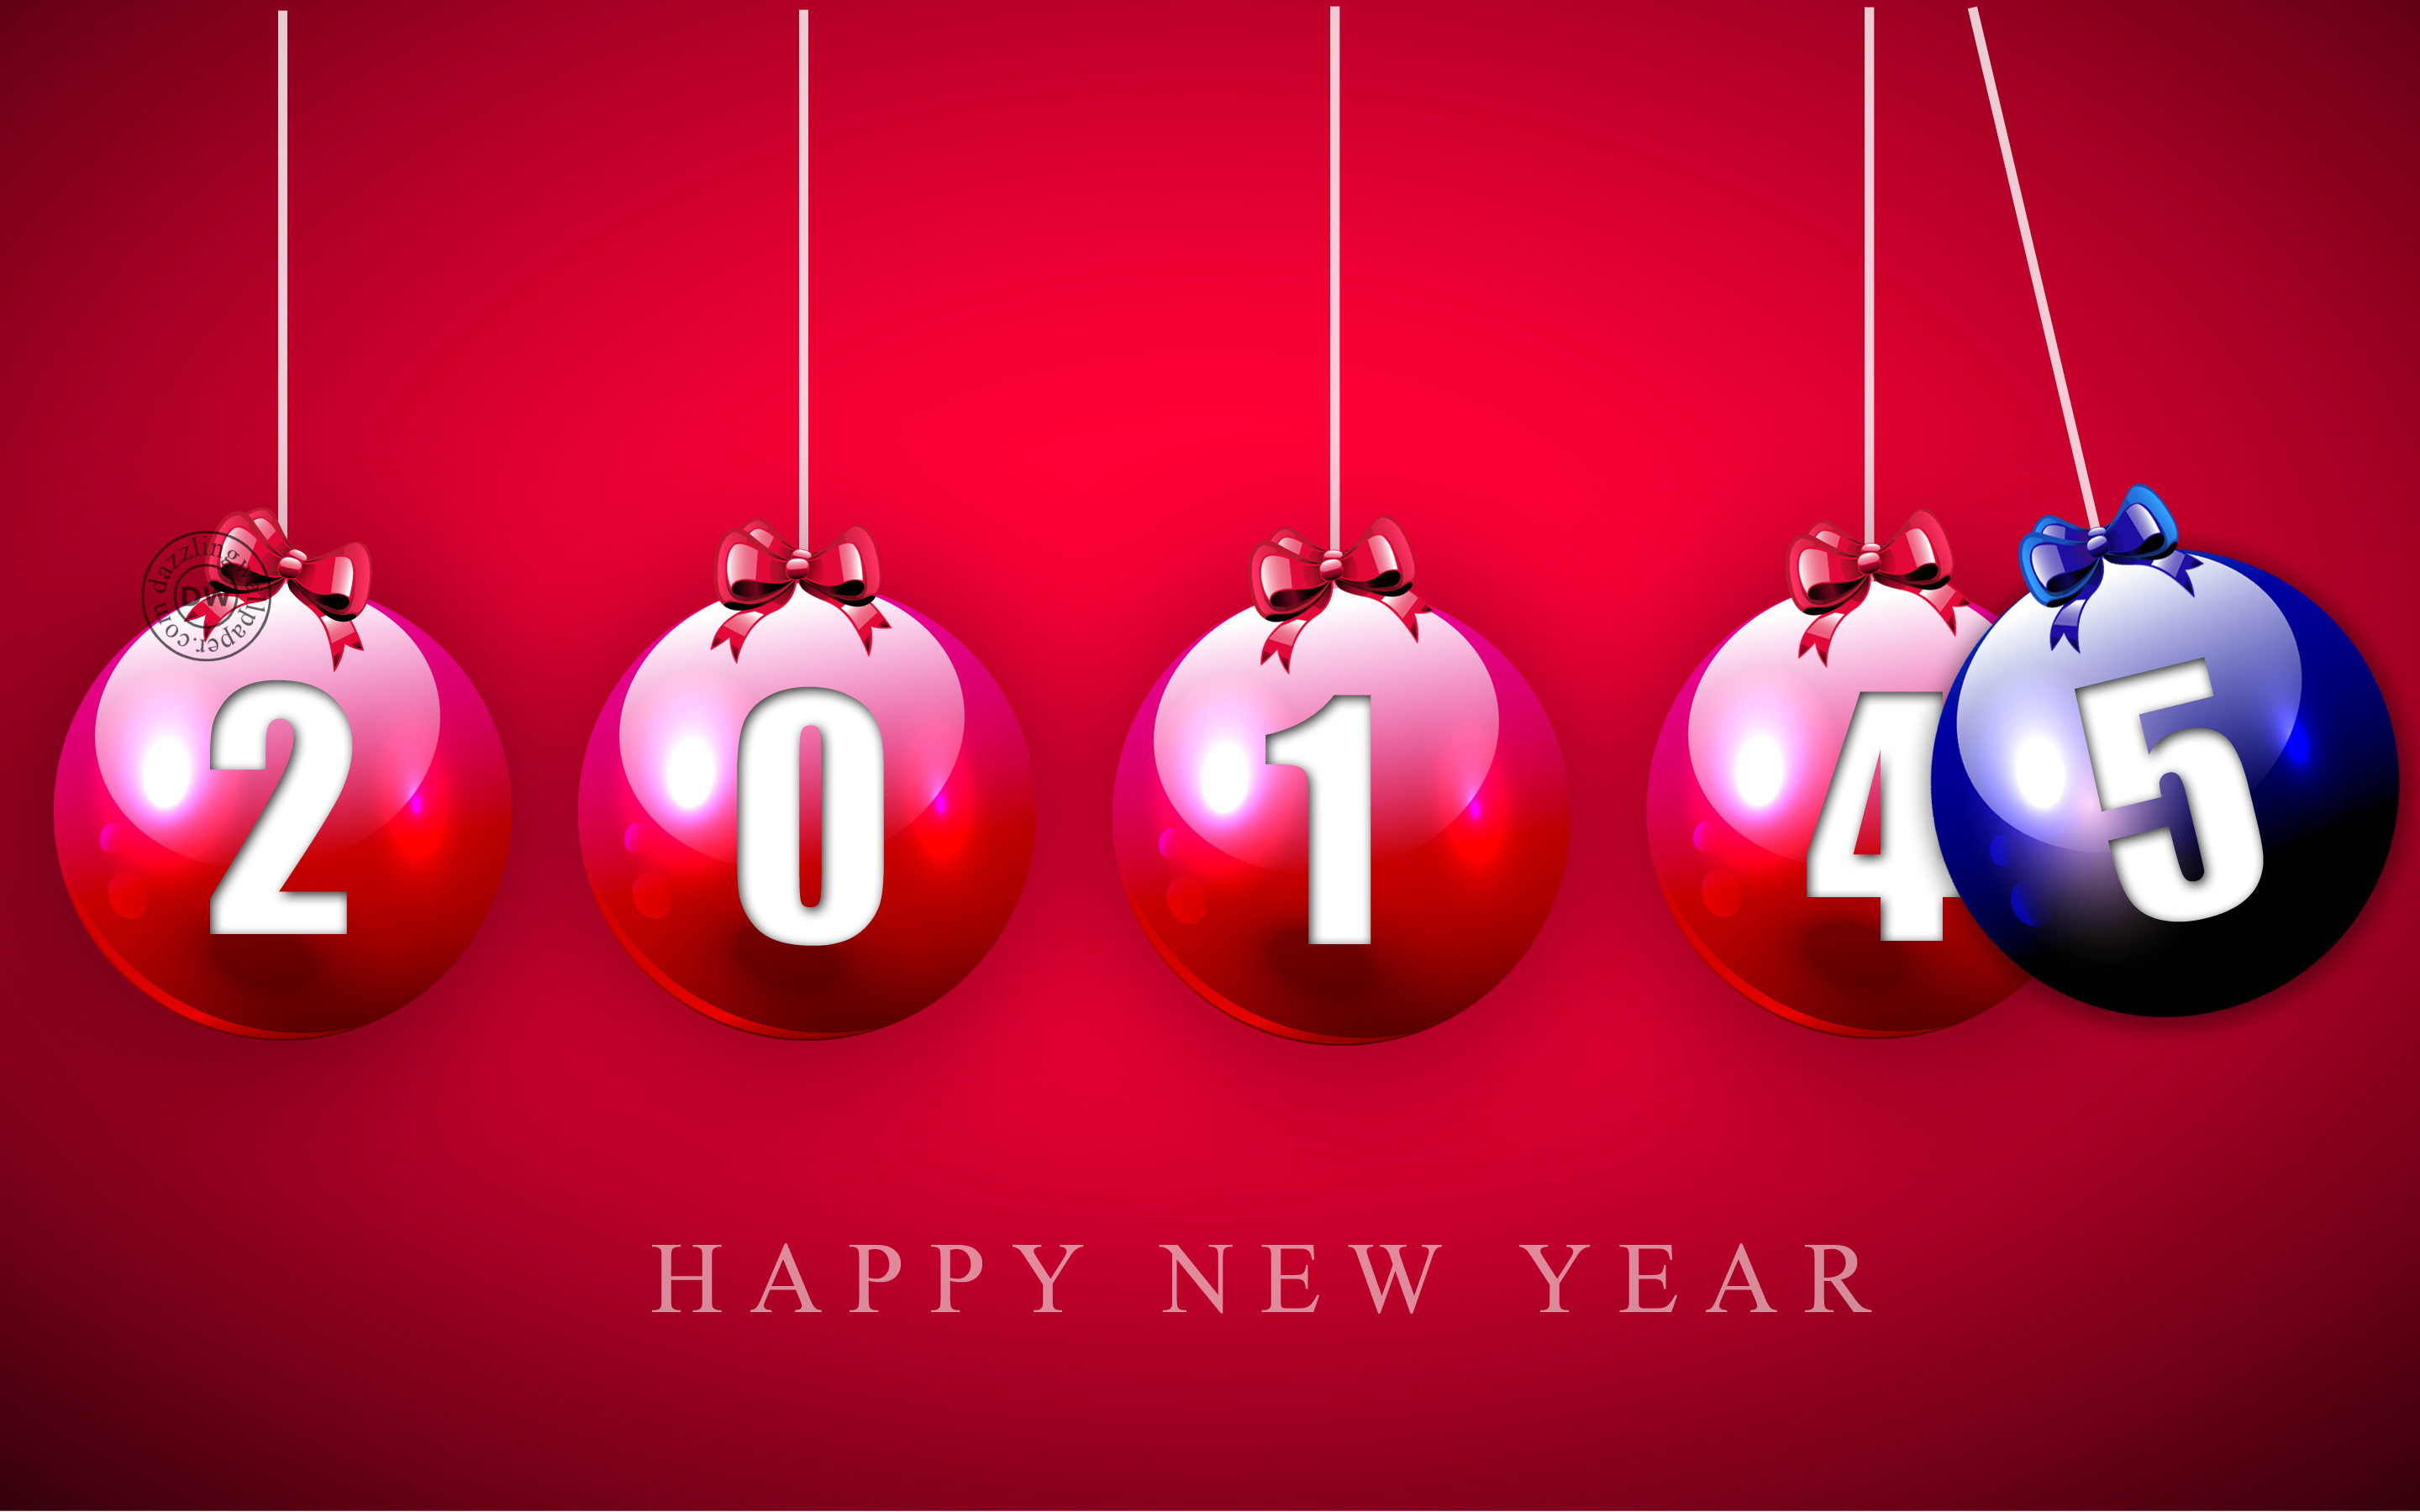 New Year 2015 HD Wallpaper Background Image 2880x1800 ID 2880x1800